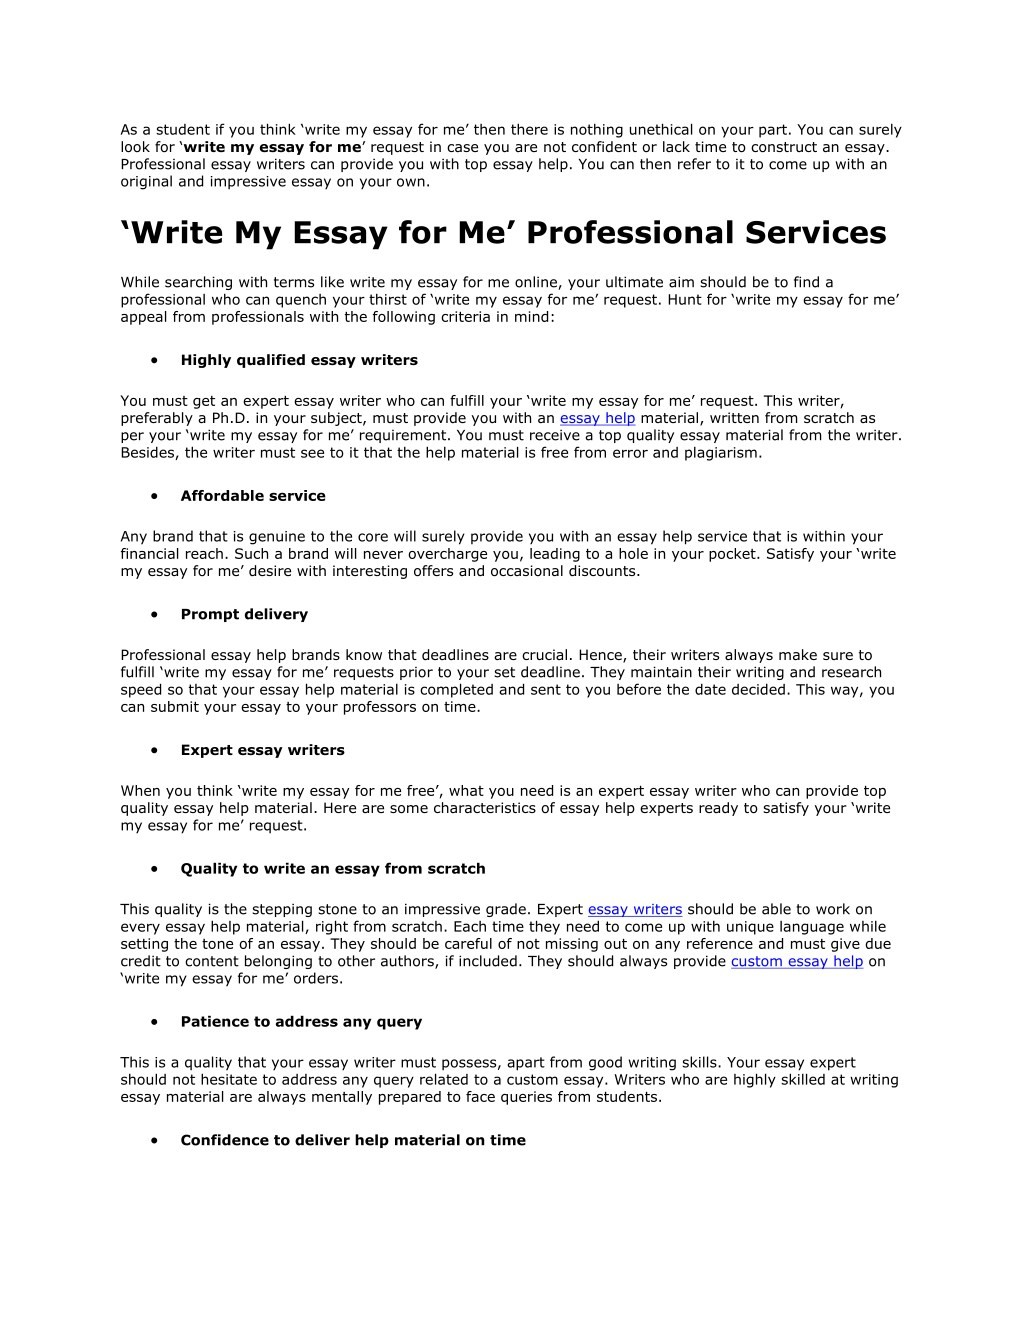 017 Write My Essay For Me Example As Student If You Think Surprising Reviews Canada Free Uk Large